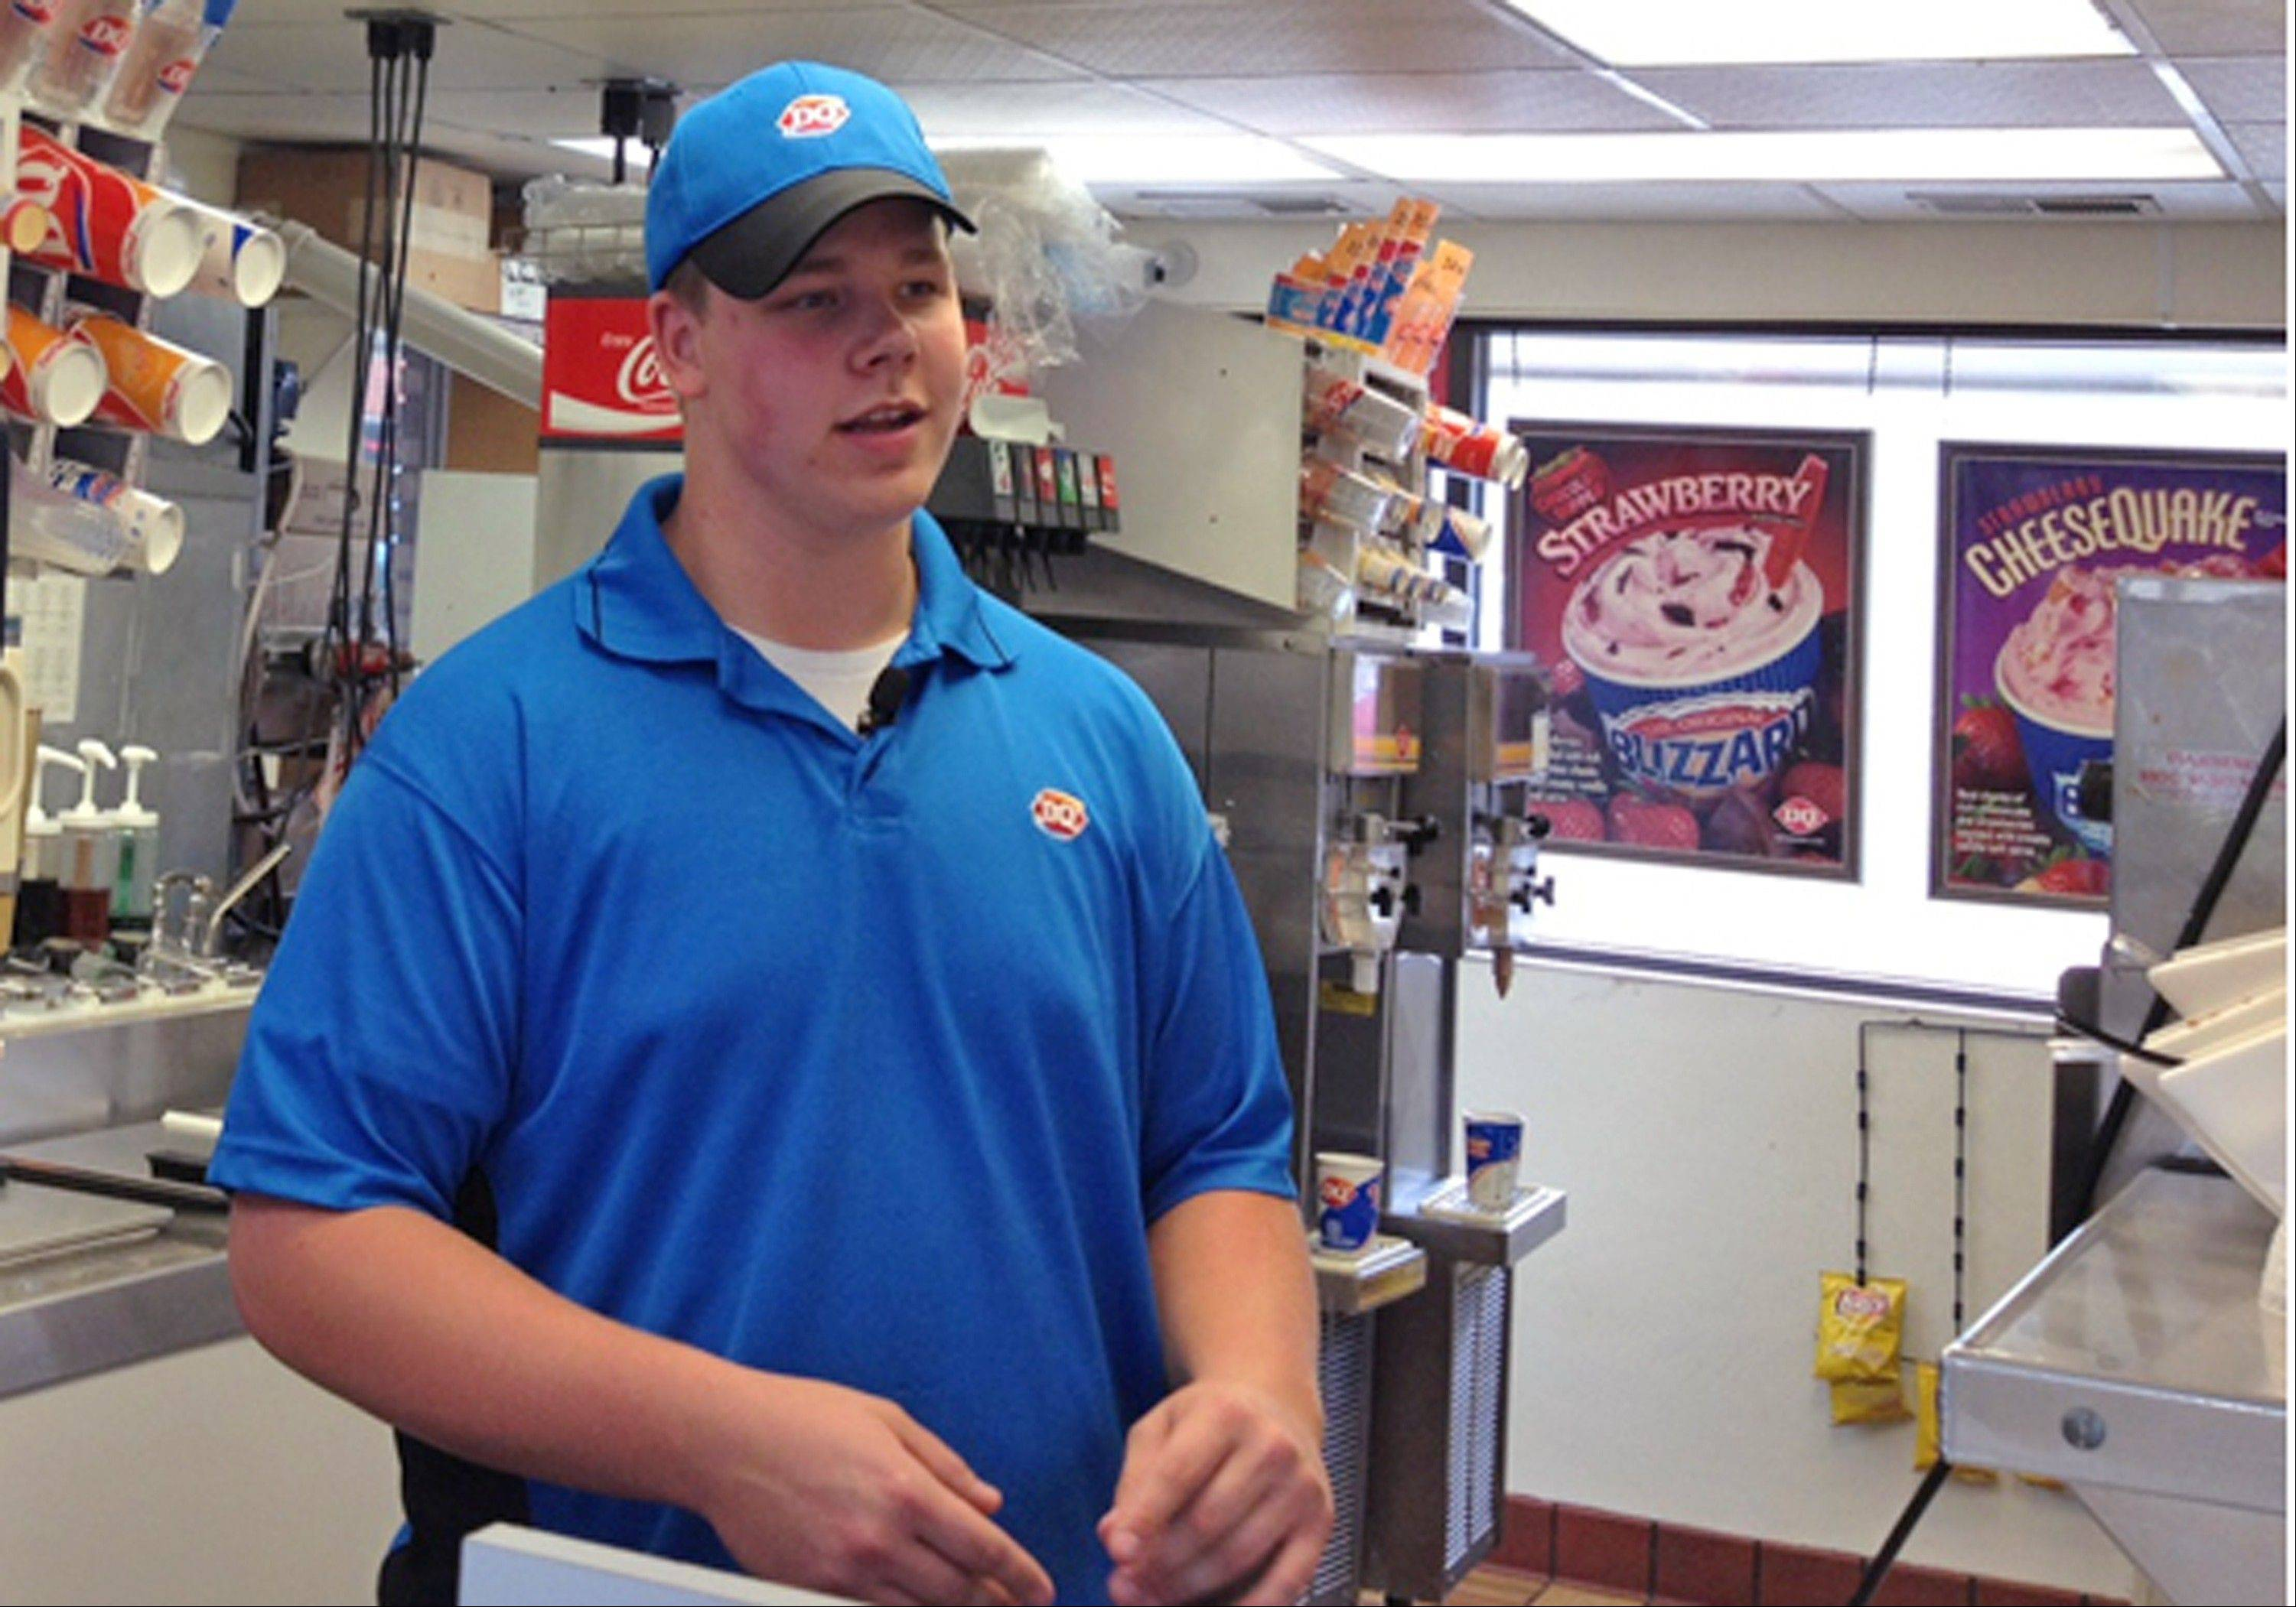 In this screen grab provided by WCCO TV is Dairy Queen employee Joey Prusak in Hopkins, Minn. Prusak is winning praise for his treatment of a visually impaired customer who unwittingly dropped a $20 bill on the floor. After another customer pocketed the bill, Prusak asked her to return it, and when she didn't, told her to leave the store. He then gave the visually impaired customer $20 from his own wallet.